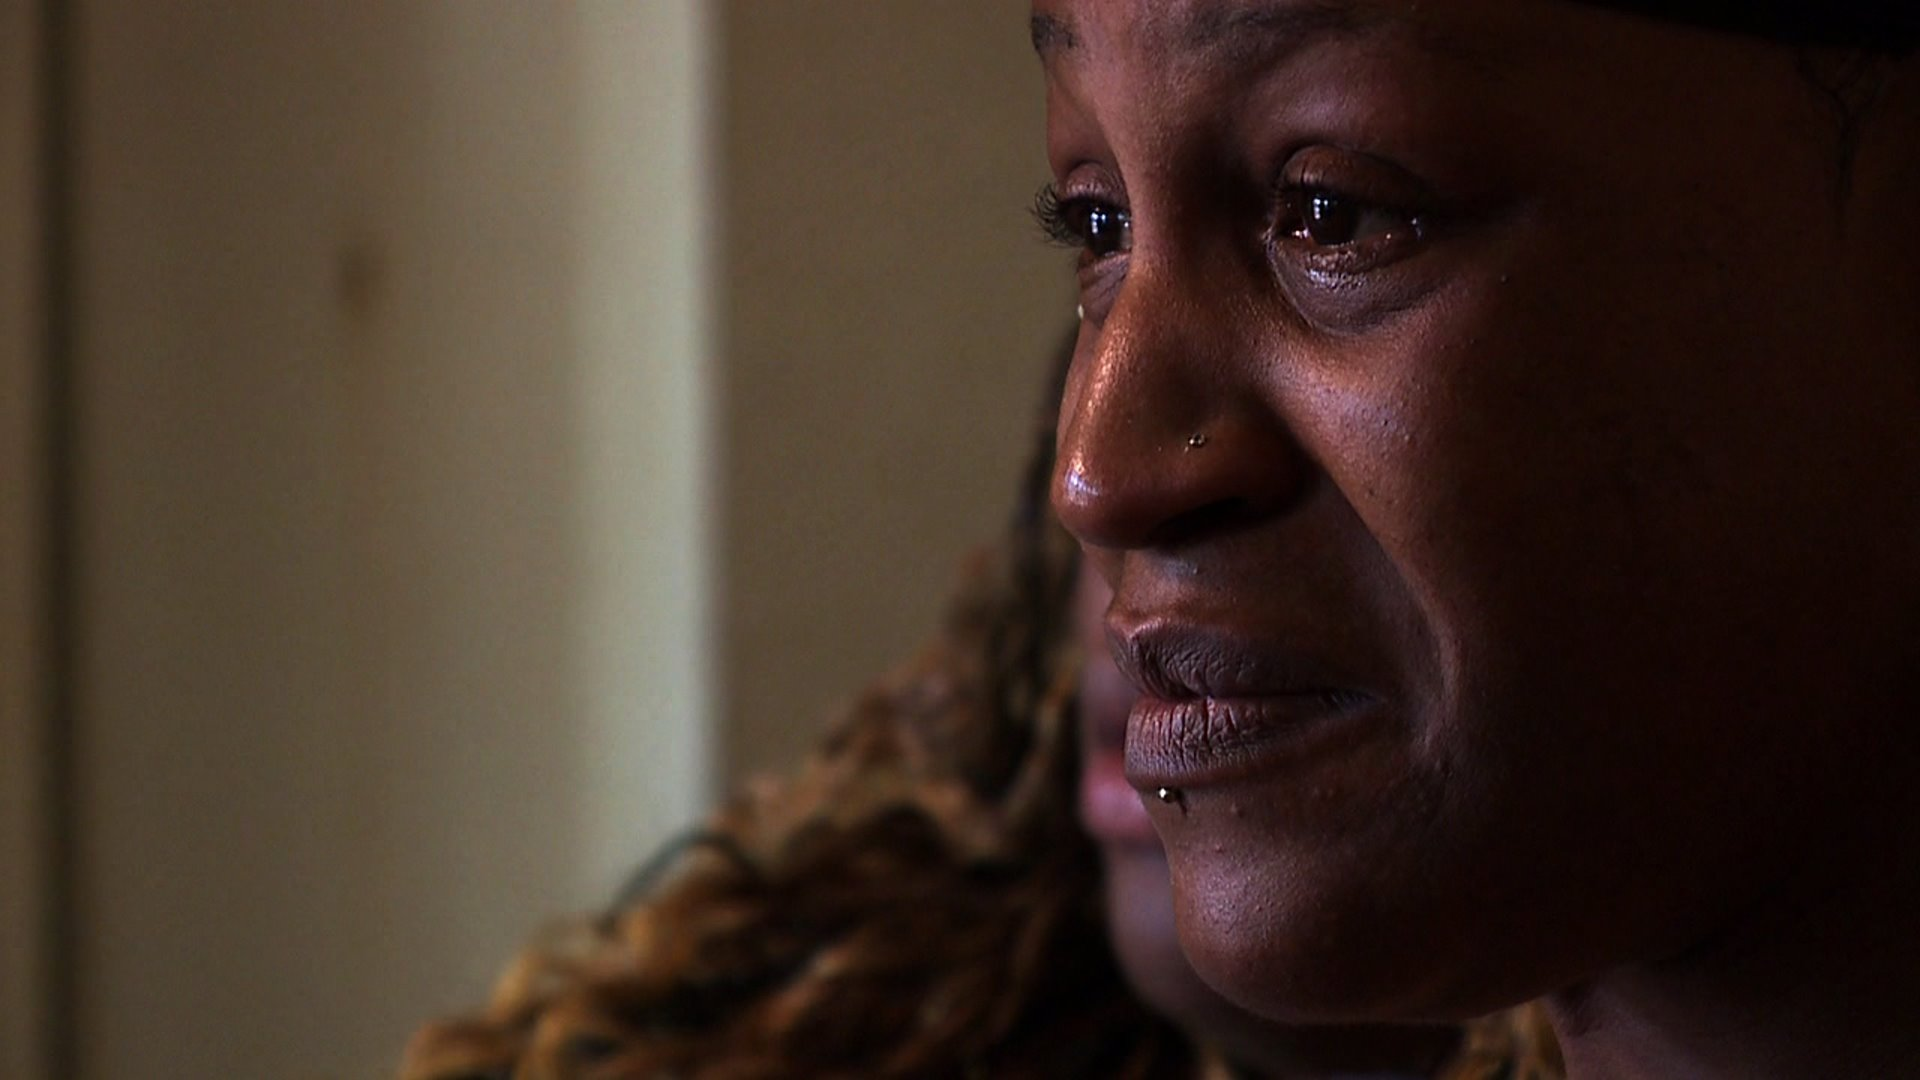 Ramona Tucker-Smith was injured when a dog attacked her at the LaQuinta Inn in Greenwood Village, Colo.